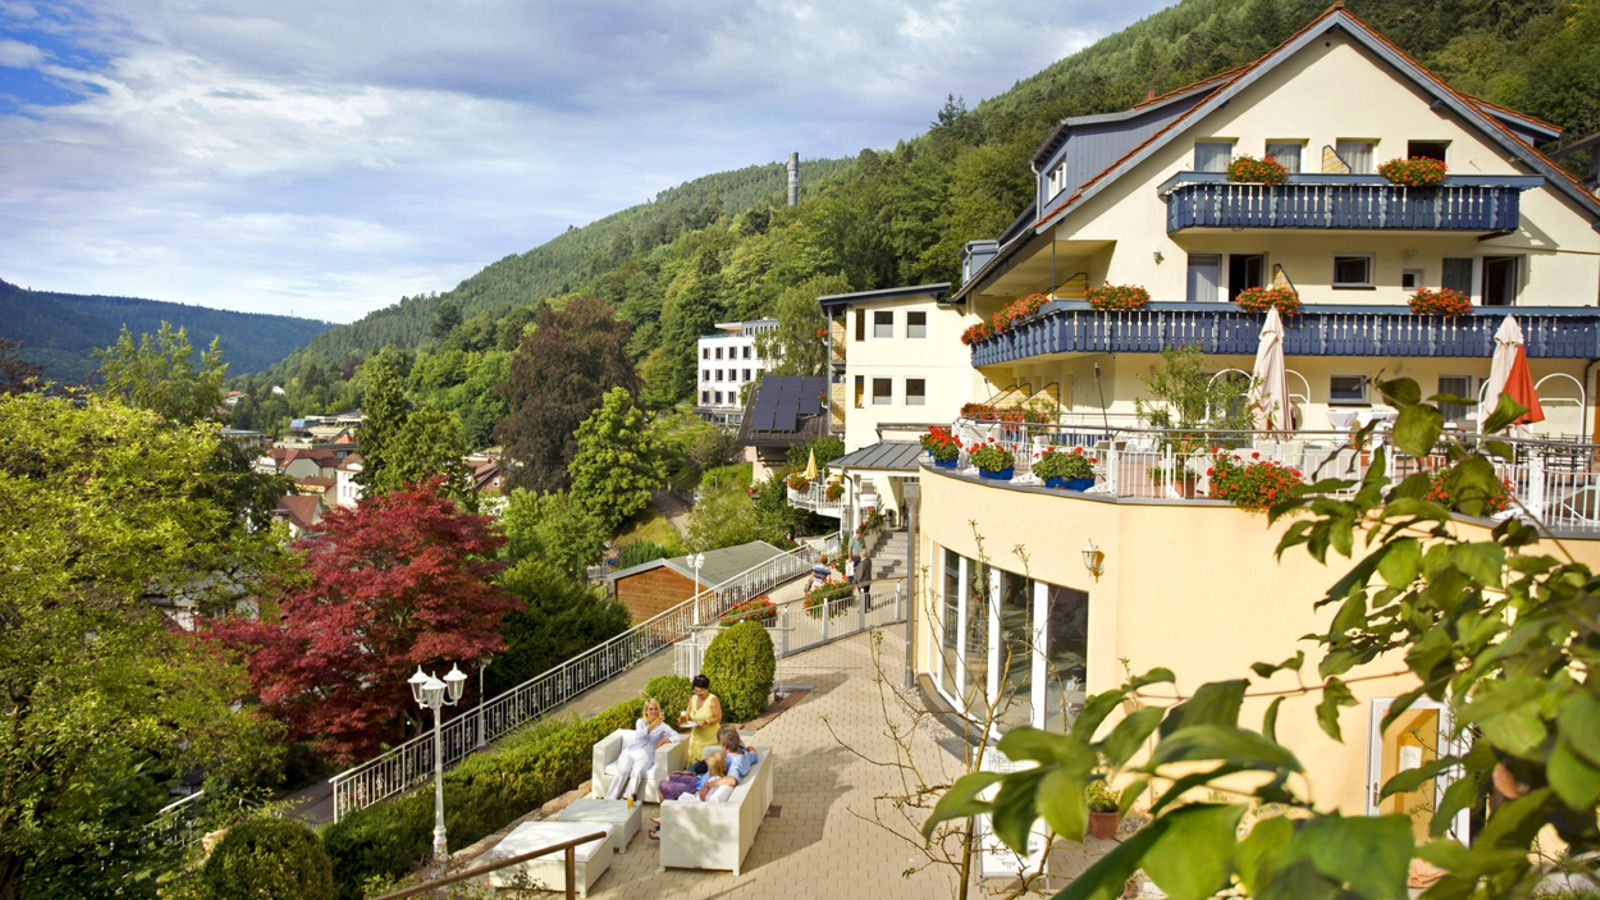 Wellnesshotel Rothfuss Bad Wildbad - Seitenansicht